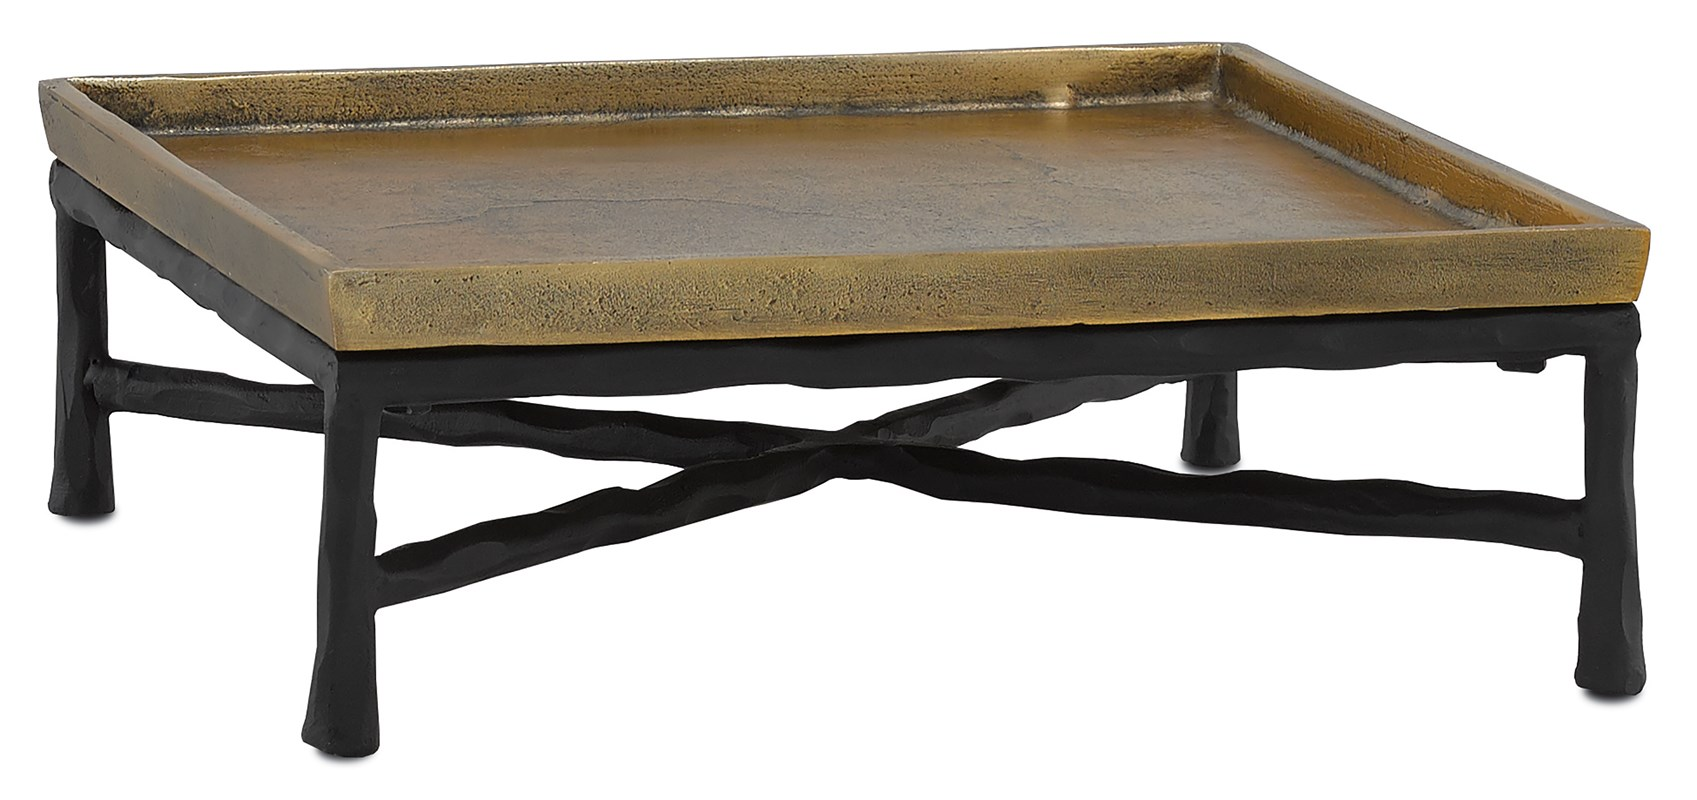 The Small Brass Tray-$224.00